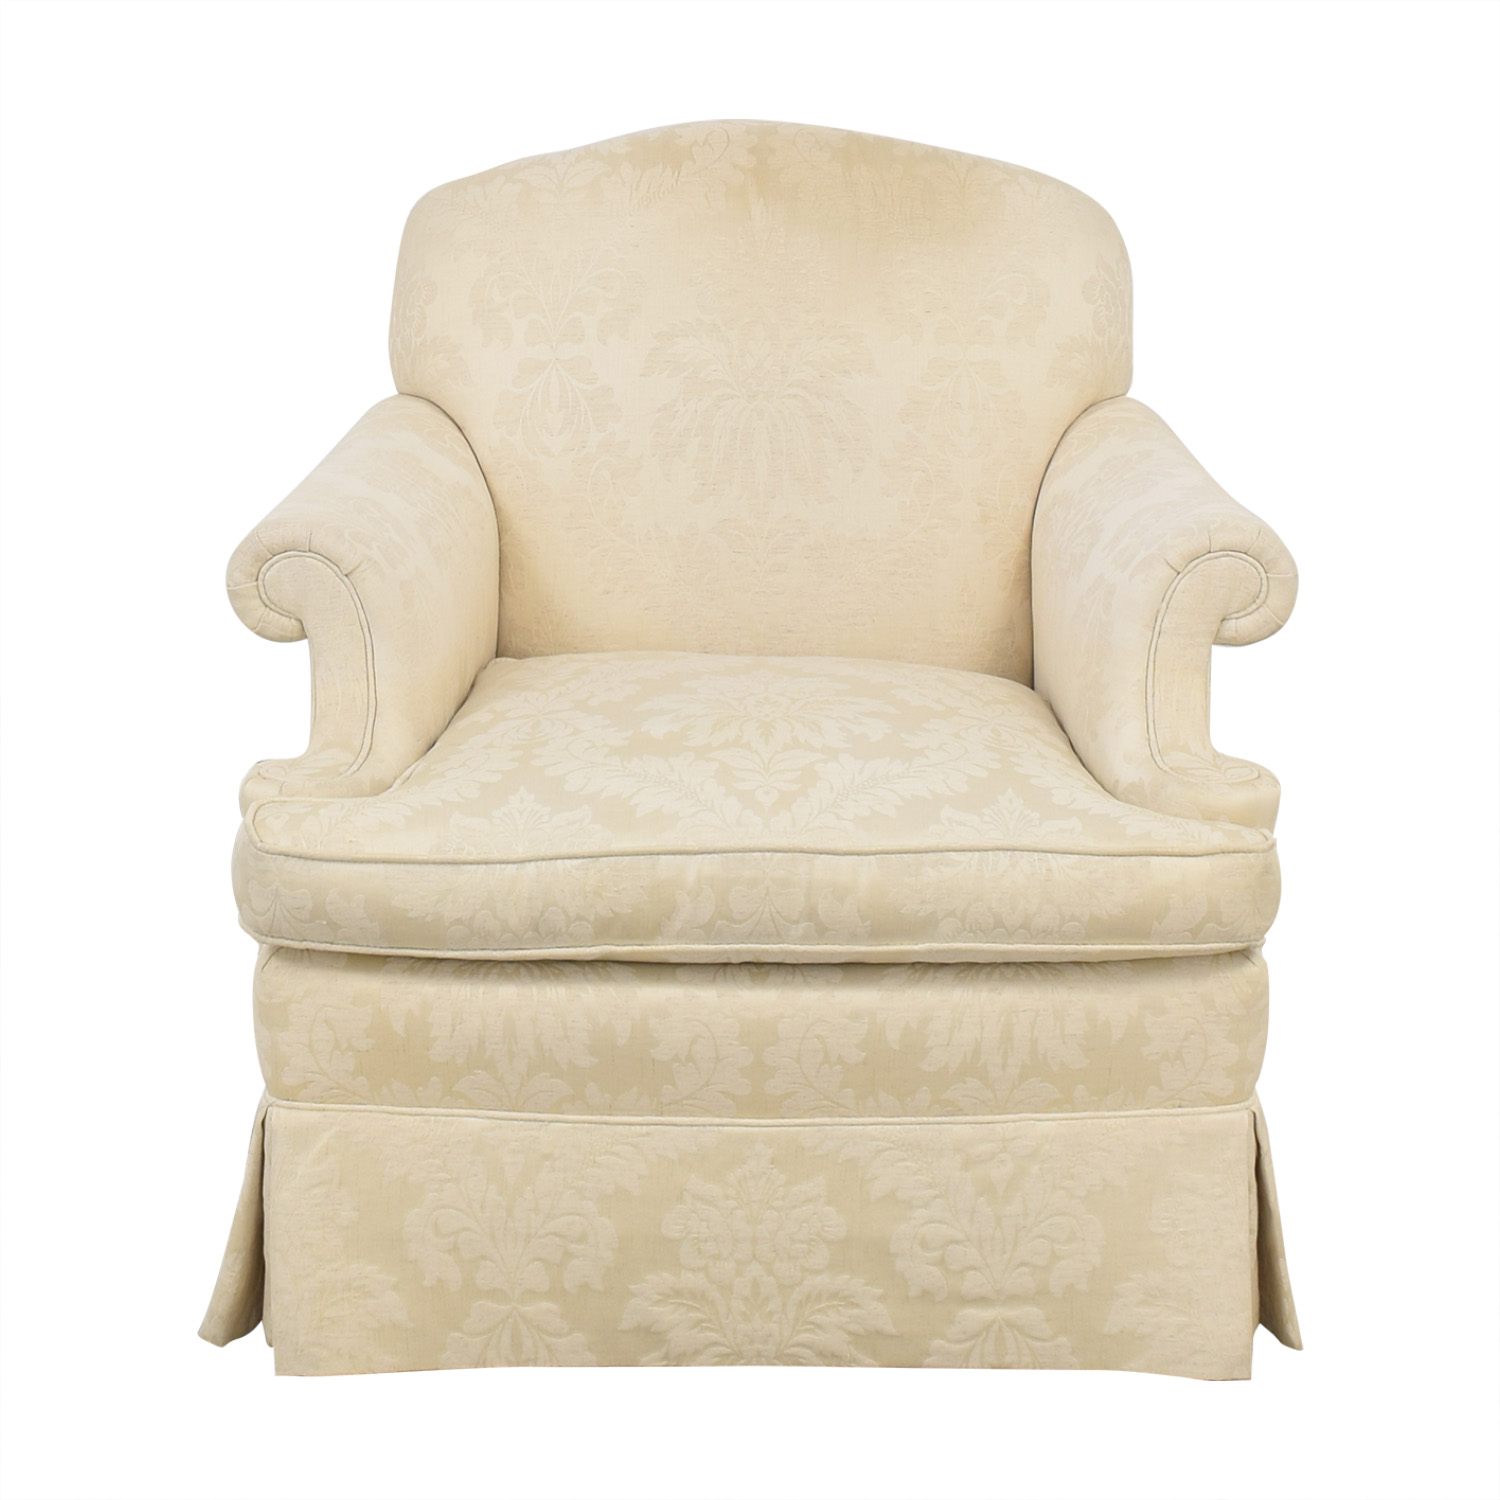 Henredon Furniture Roll Arm Accent Chair / Accent Chairs